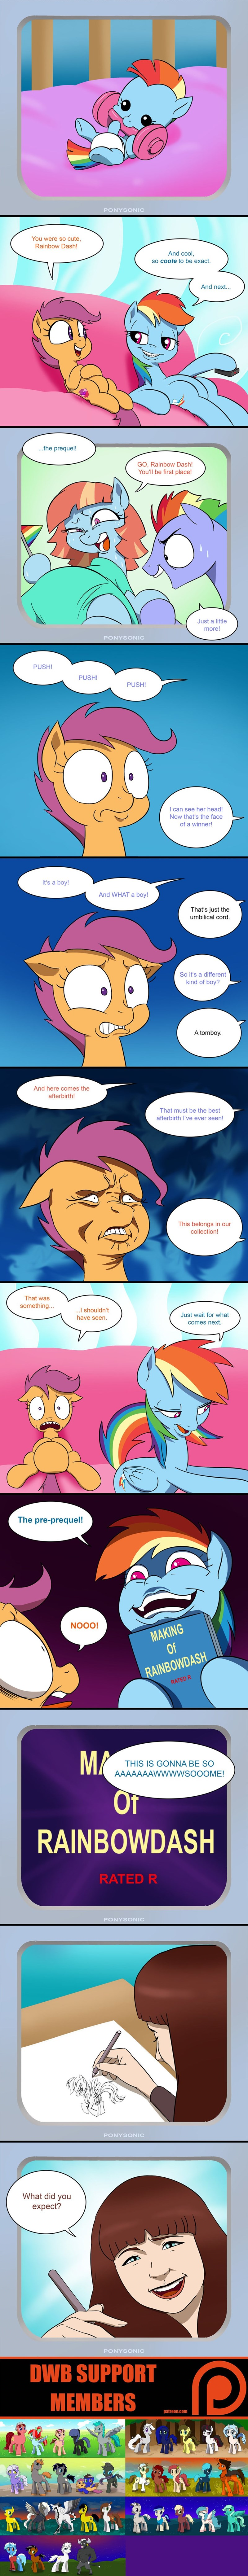 lauren faust bow hothoof parental glideance windy whistles comic that sounds naughty double w brothers Scootaloo rainbow dash - 9039600640